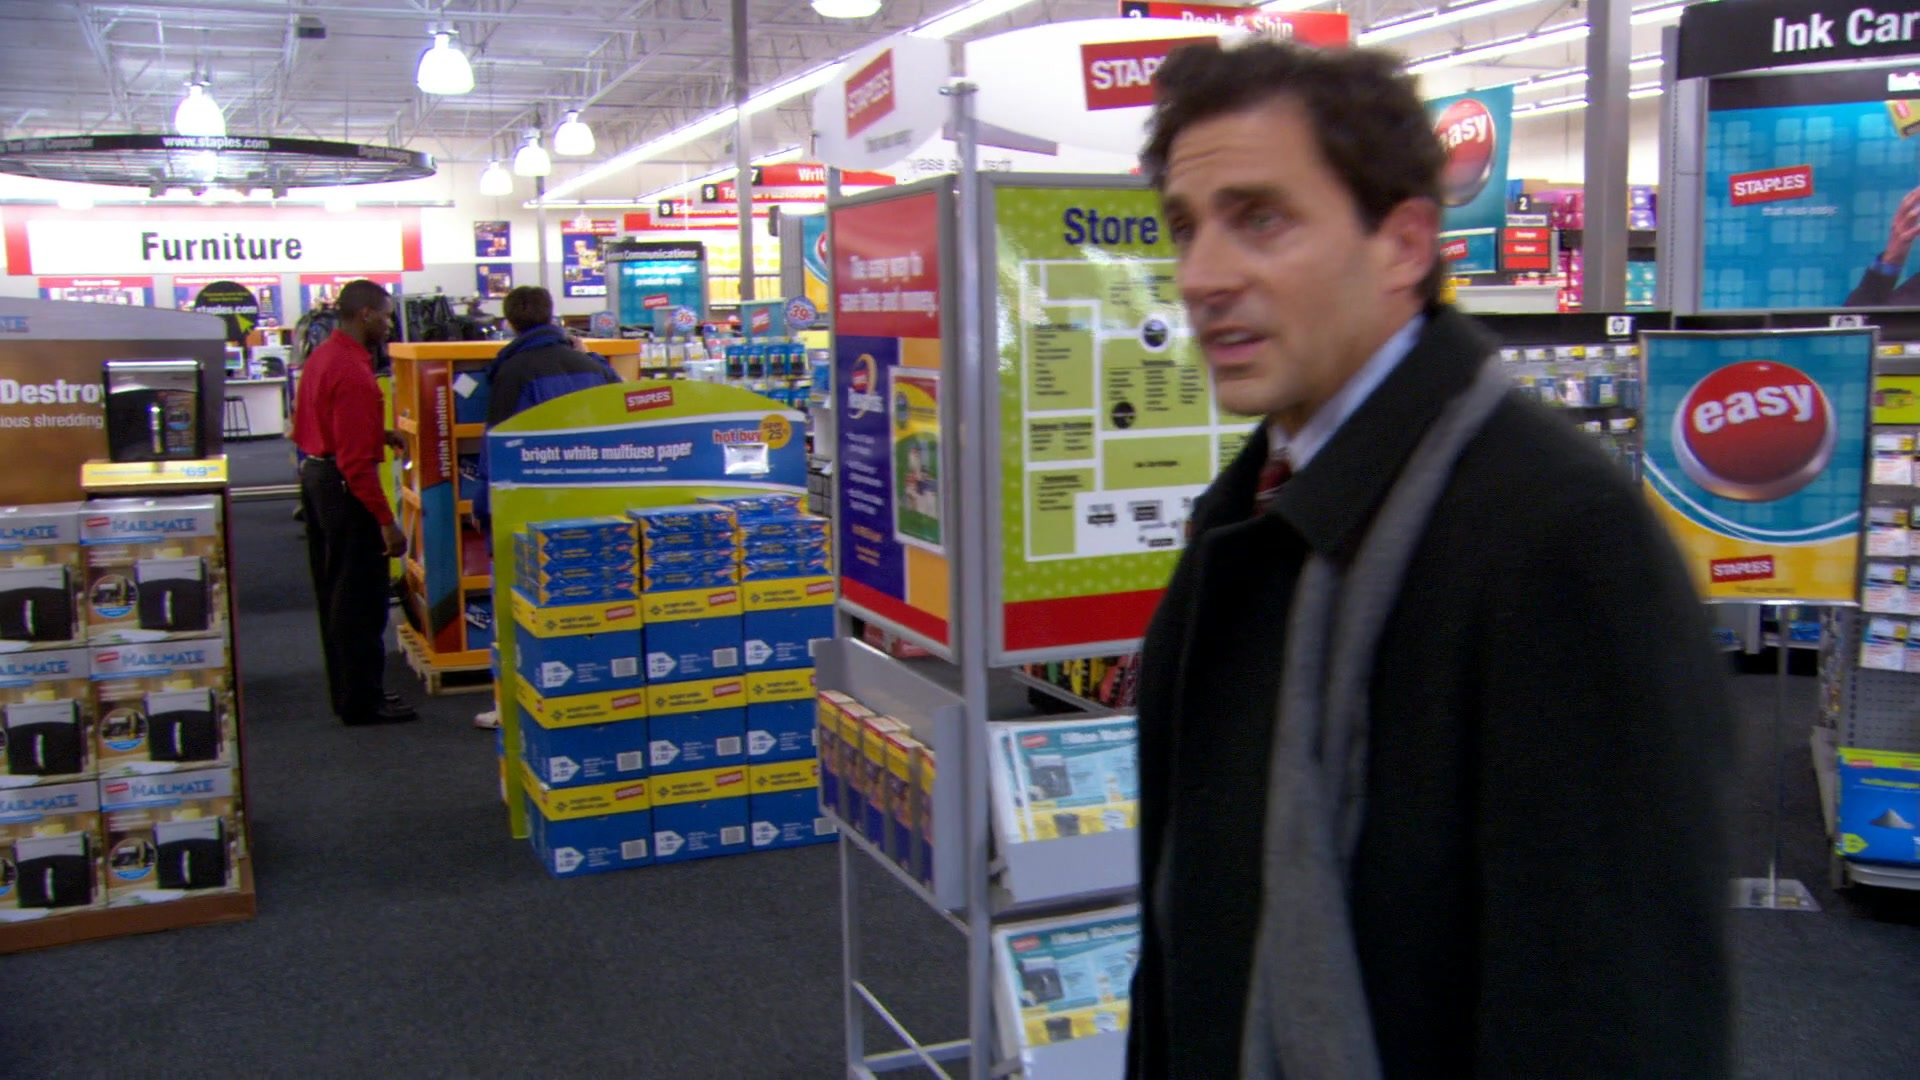 Staples Store in The Office – Season 3, Episode 14,